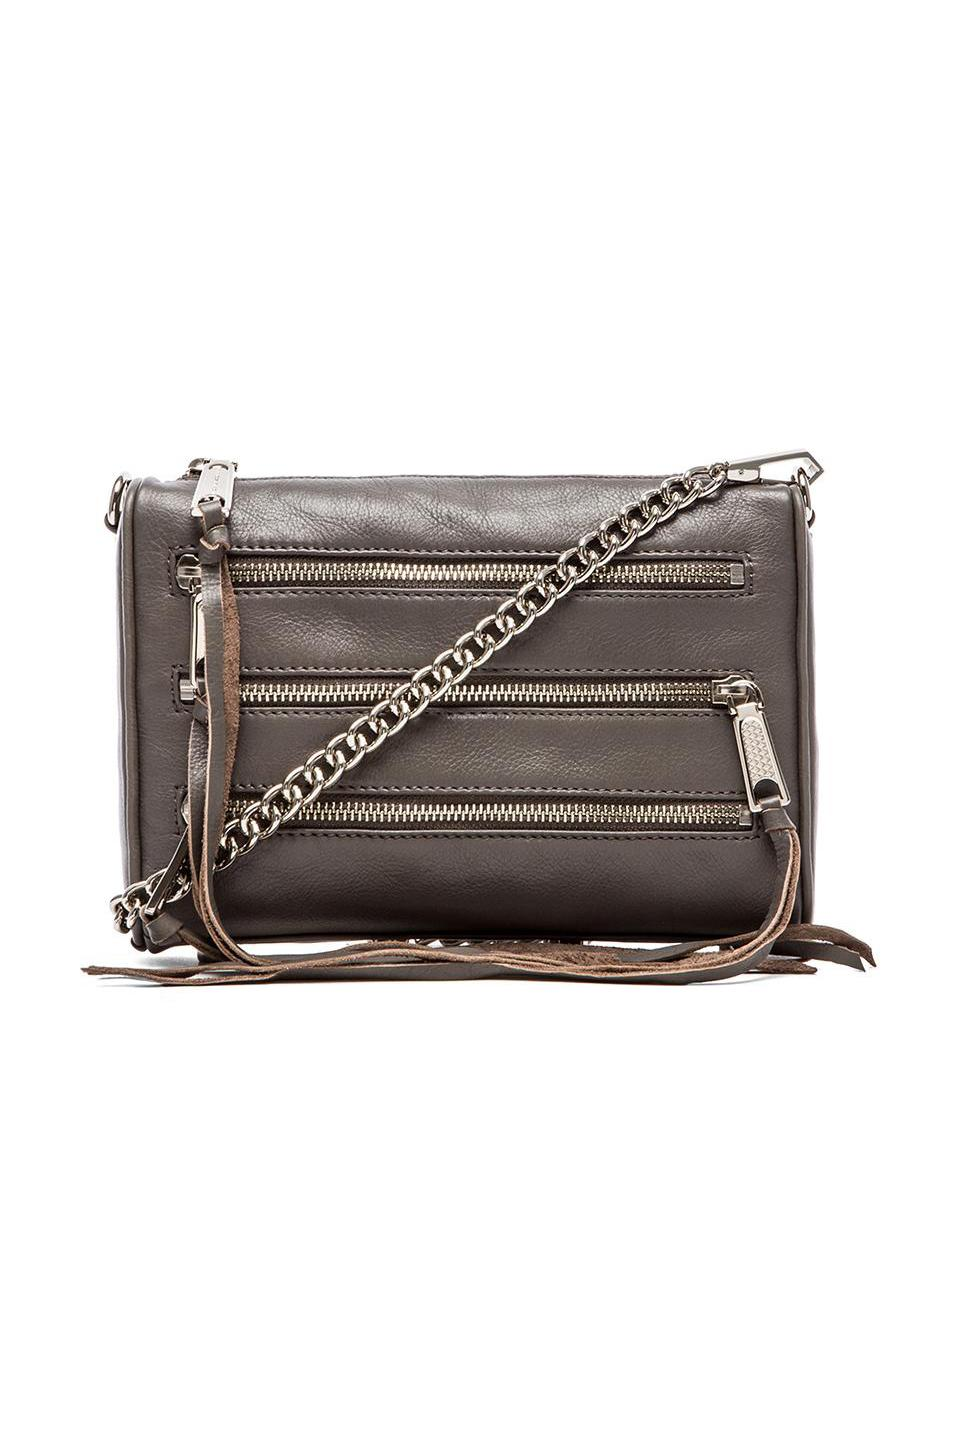 Rebecca Minkoff Mini 5 Zip in Charcoal